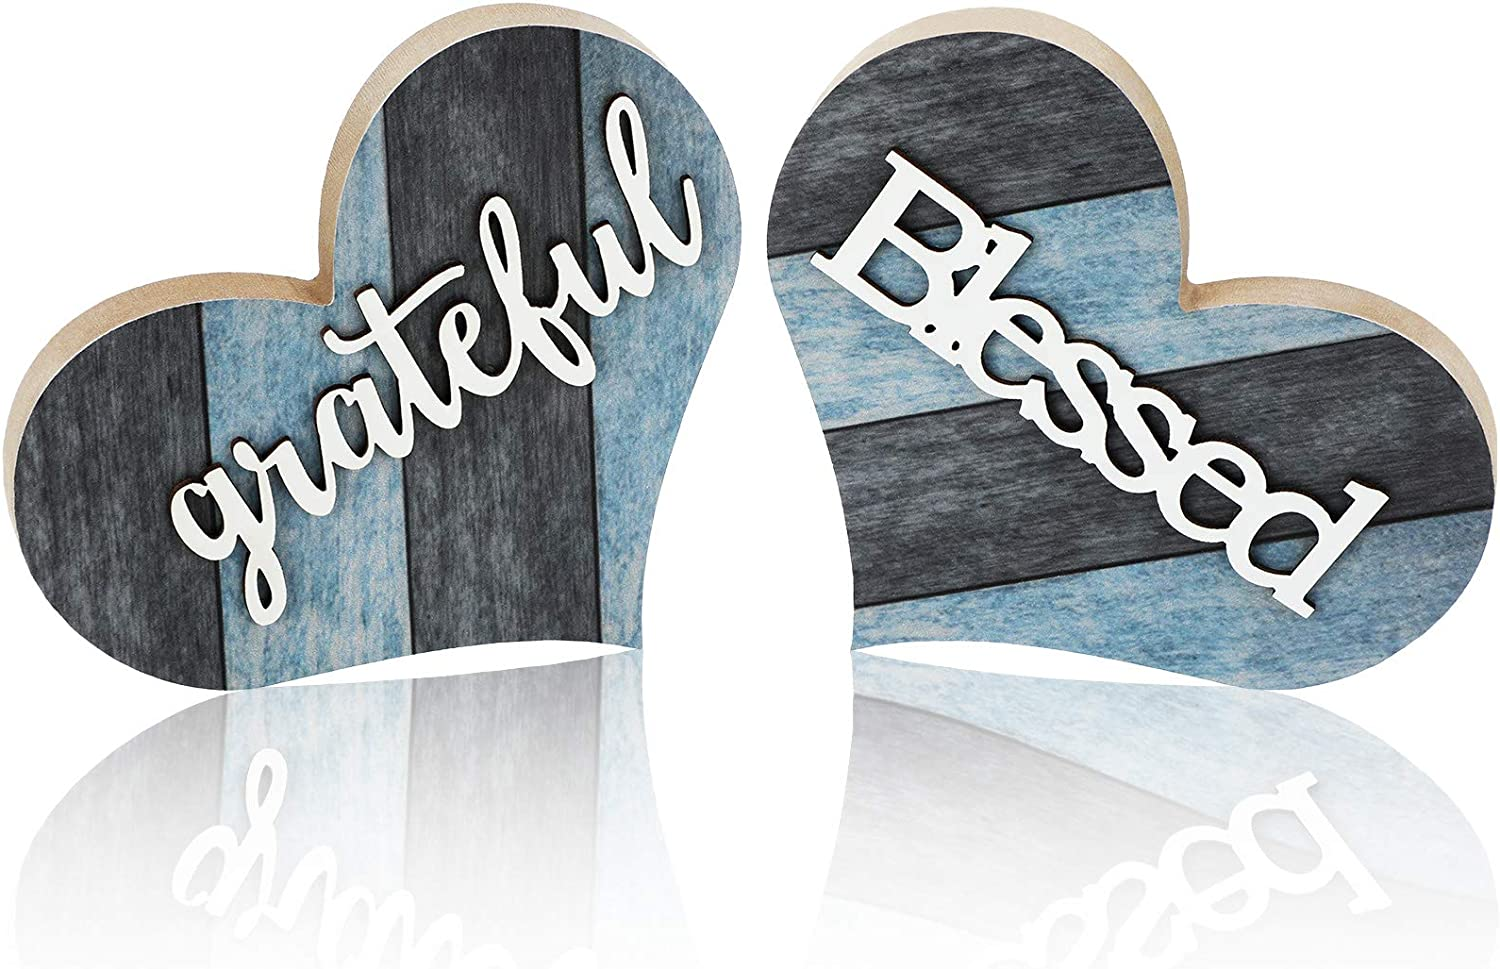 Jetec 2 Pieces Rustic Wooden Sign Heart Shaped Blessed Wooden Sign Grateful Heart Home Decoration Multicolor Wooden Table Centerpiece Home Table Ornaments for Farmhouse Living Room Decor (Blue-Gray)